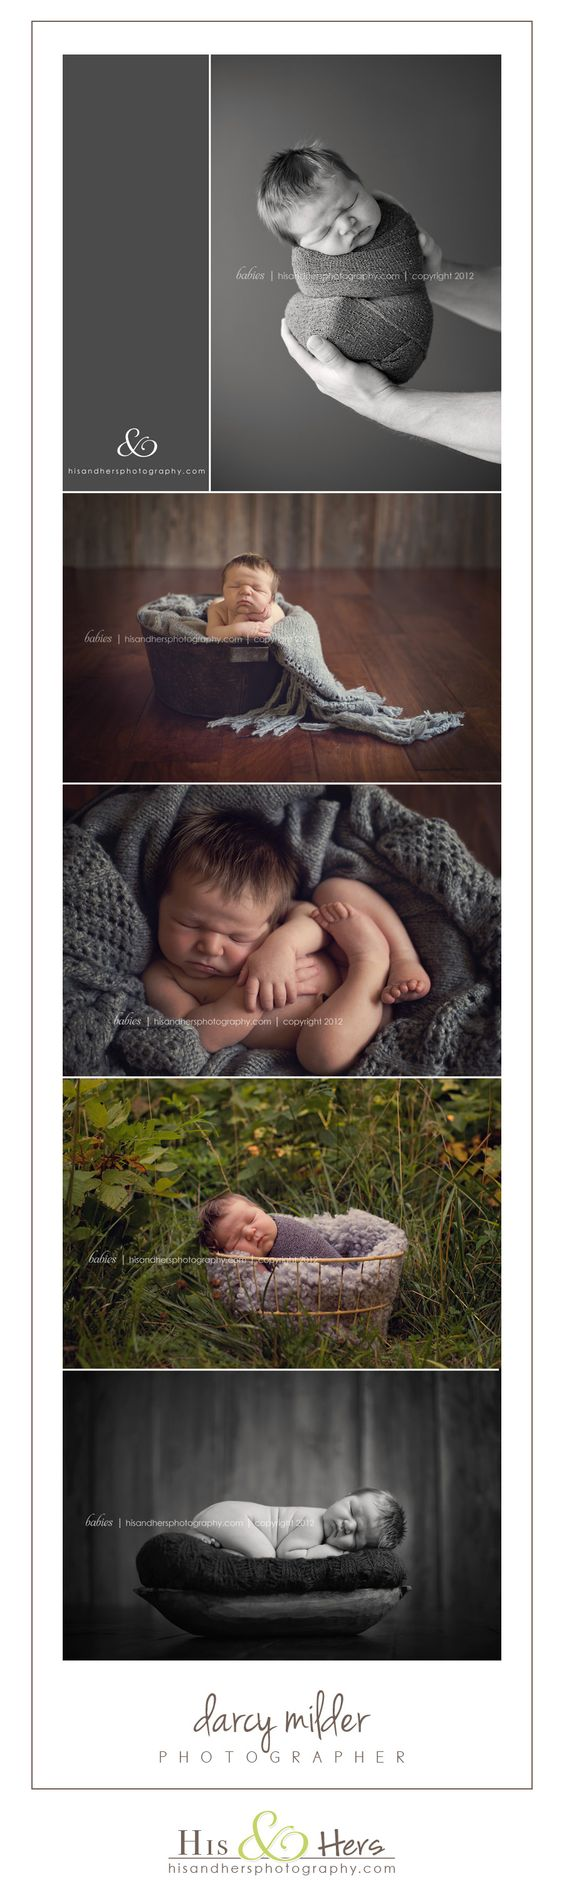 8 days old | photographer darcy milder | his & hers